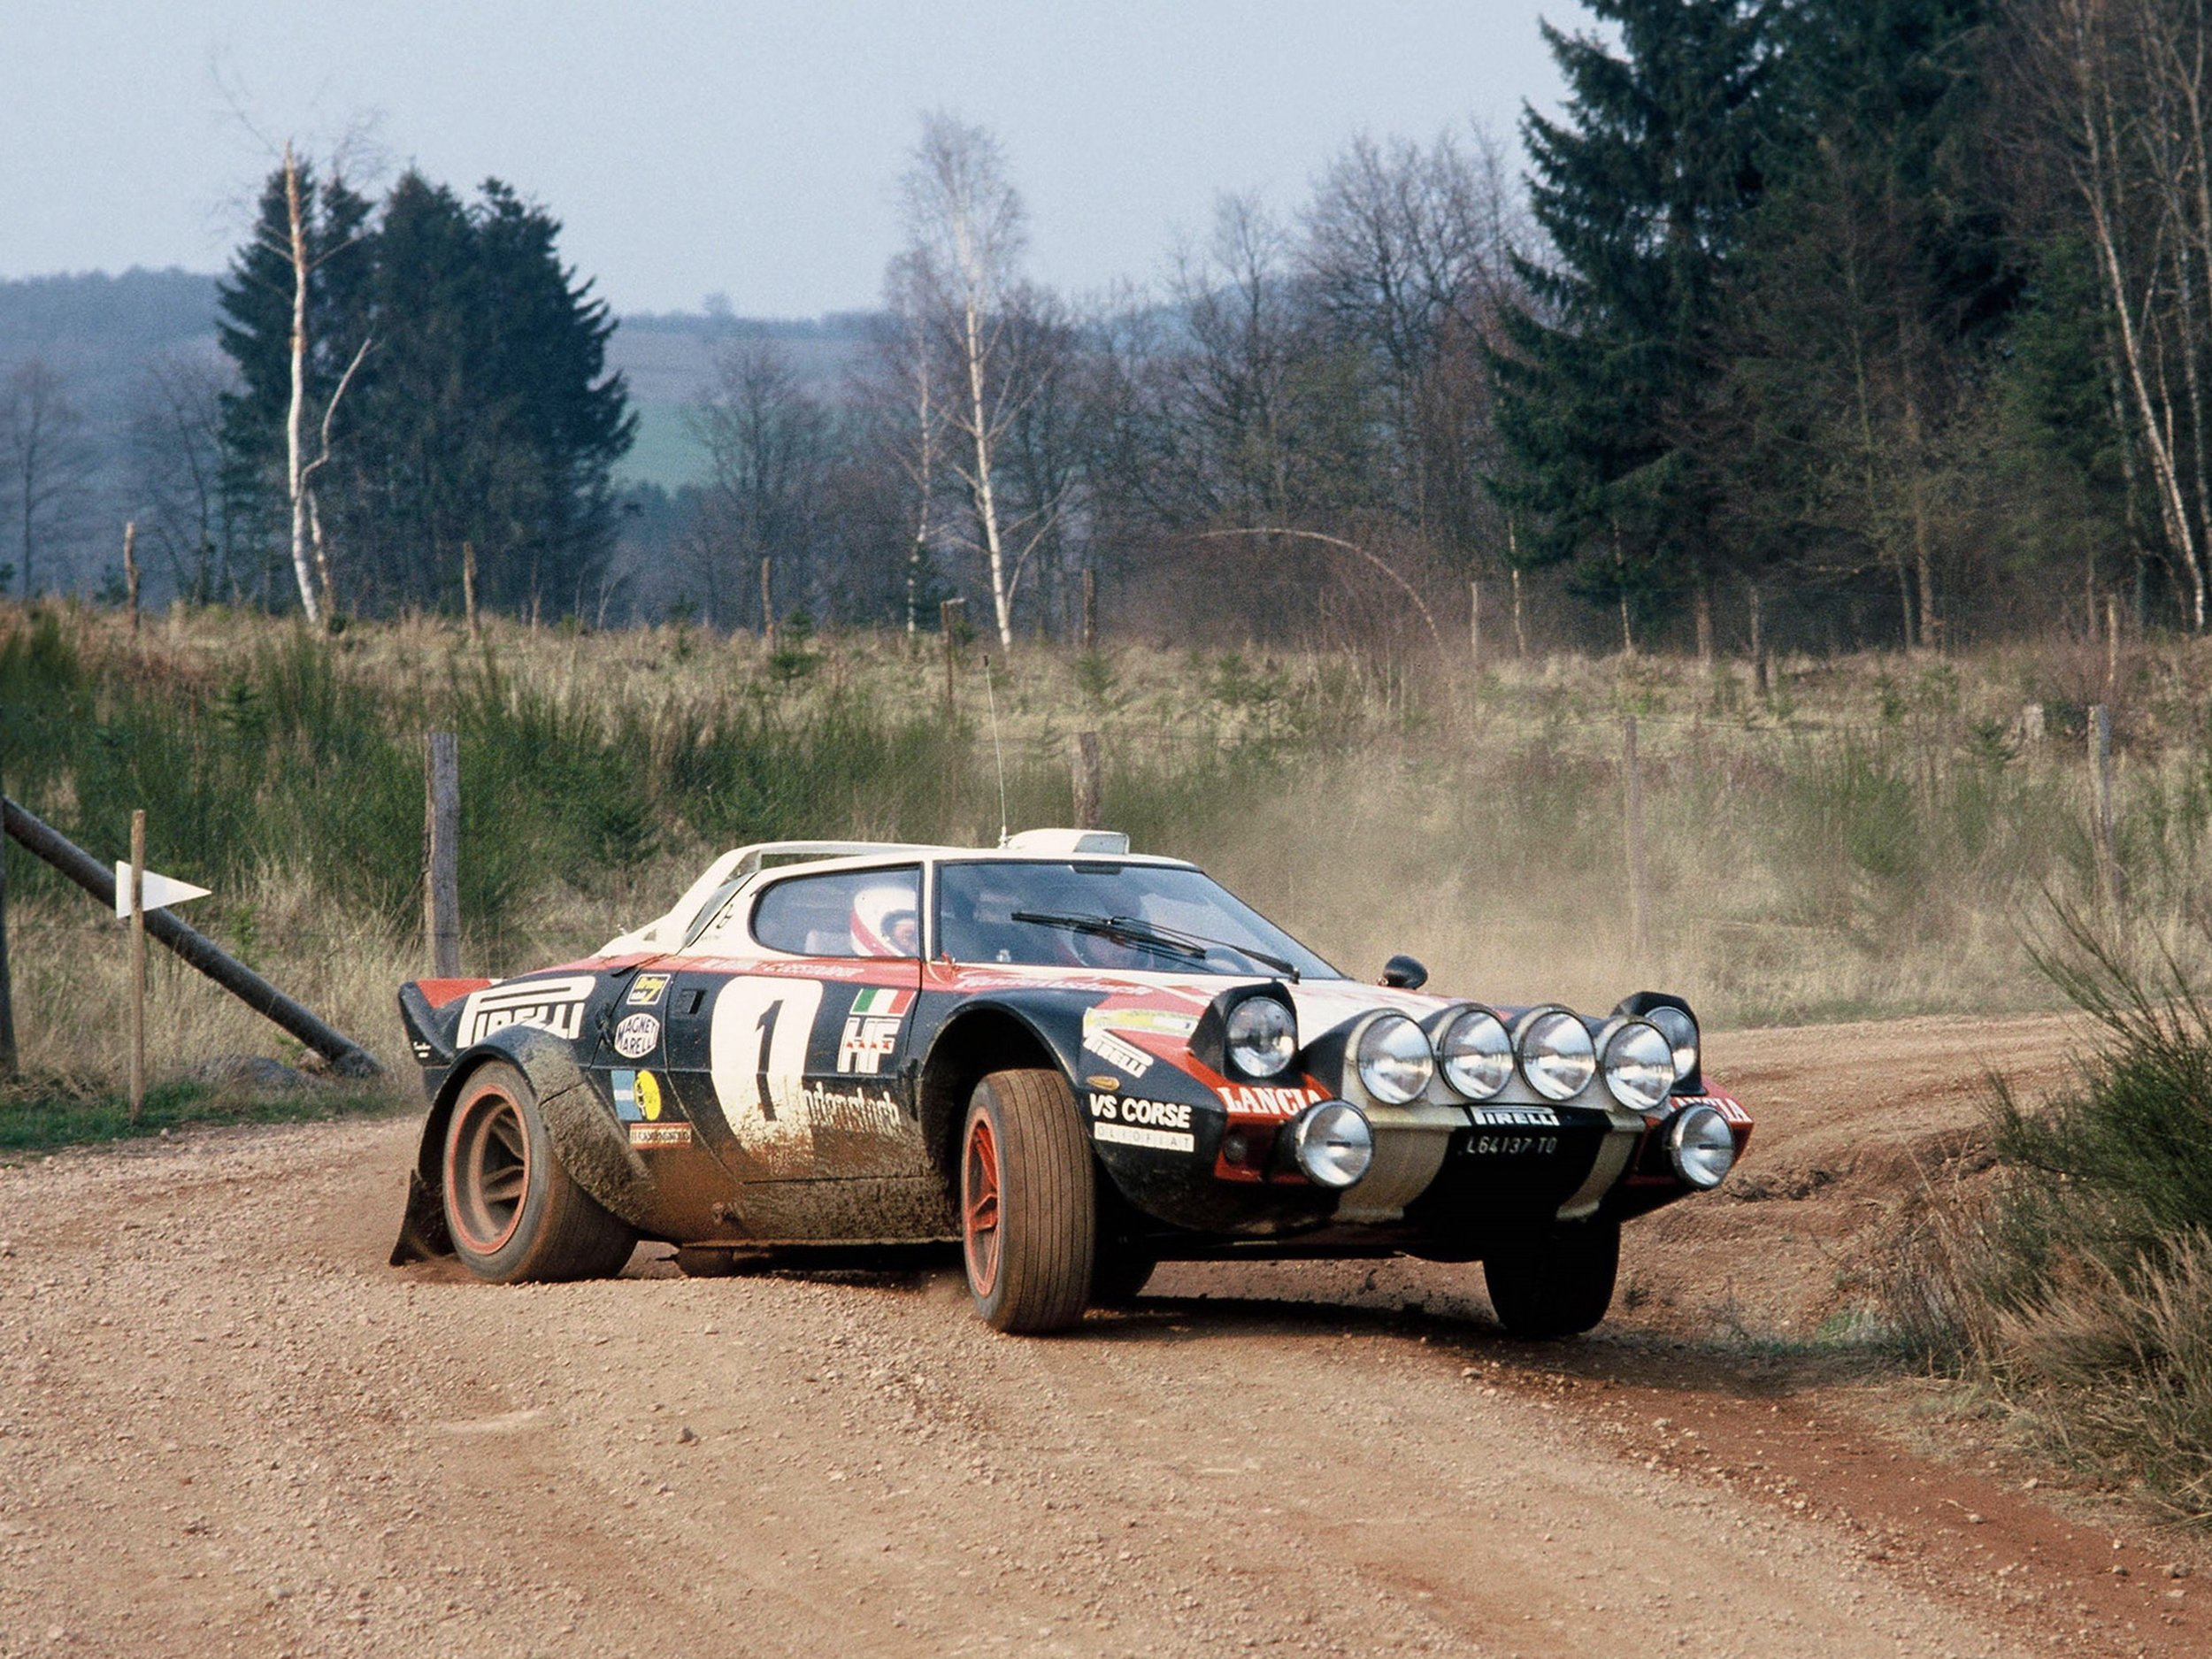 The Group 4 Lancia Stratos was the first true homologation special in rallying